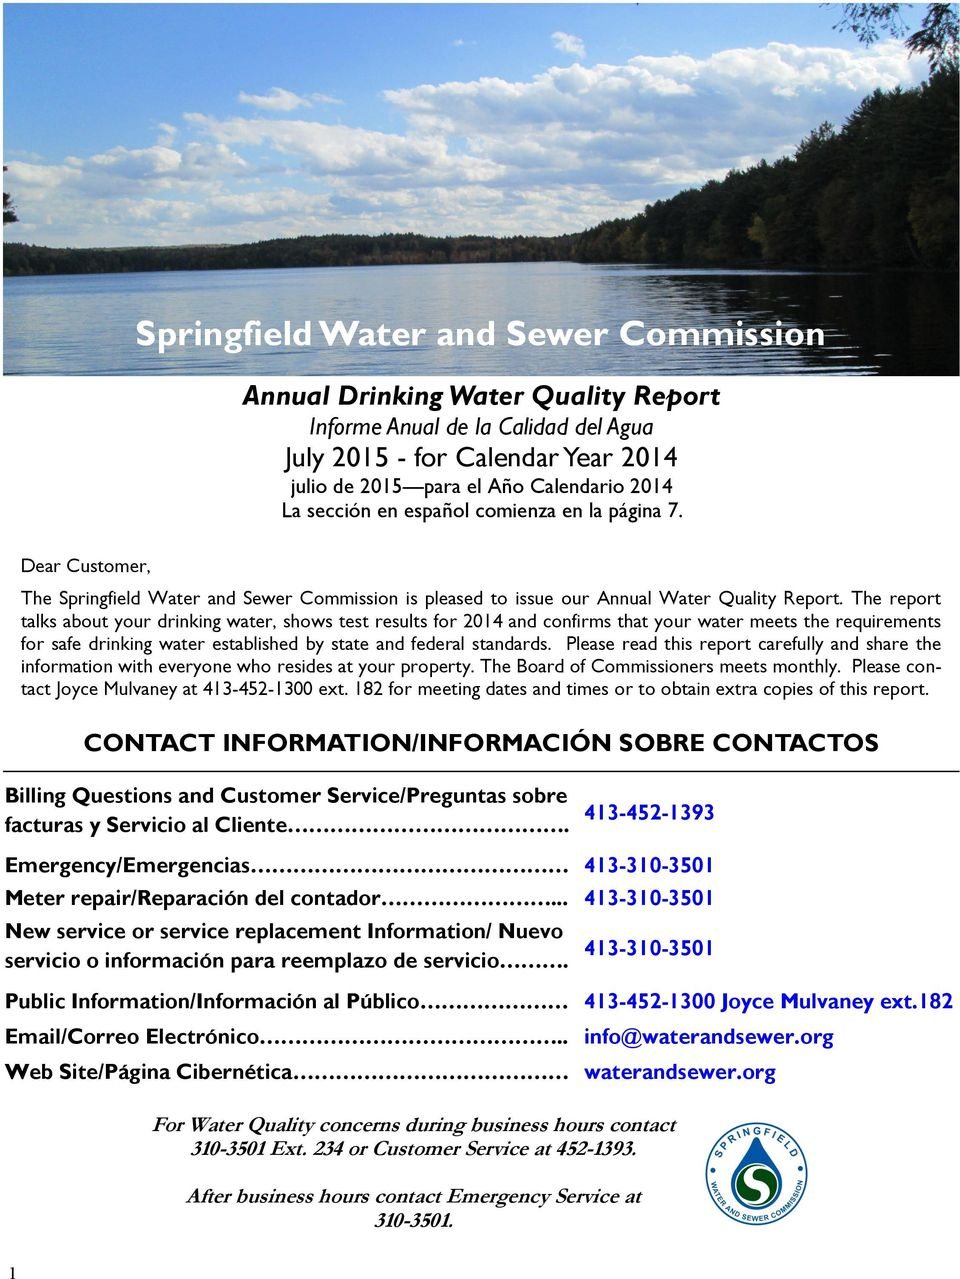 The report talks about your drinking water, shows test results for 2014 and confirms that your water meets the requirements for safe drinking water established by state and federal standards.